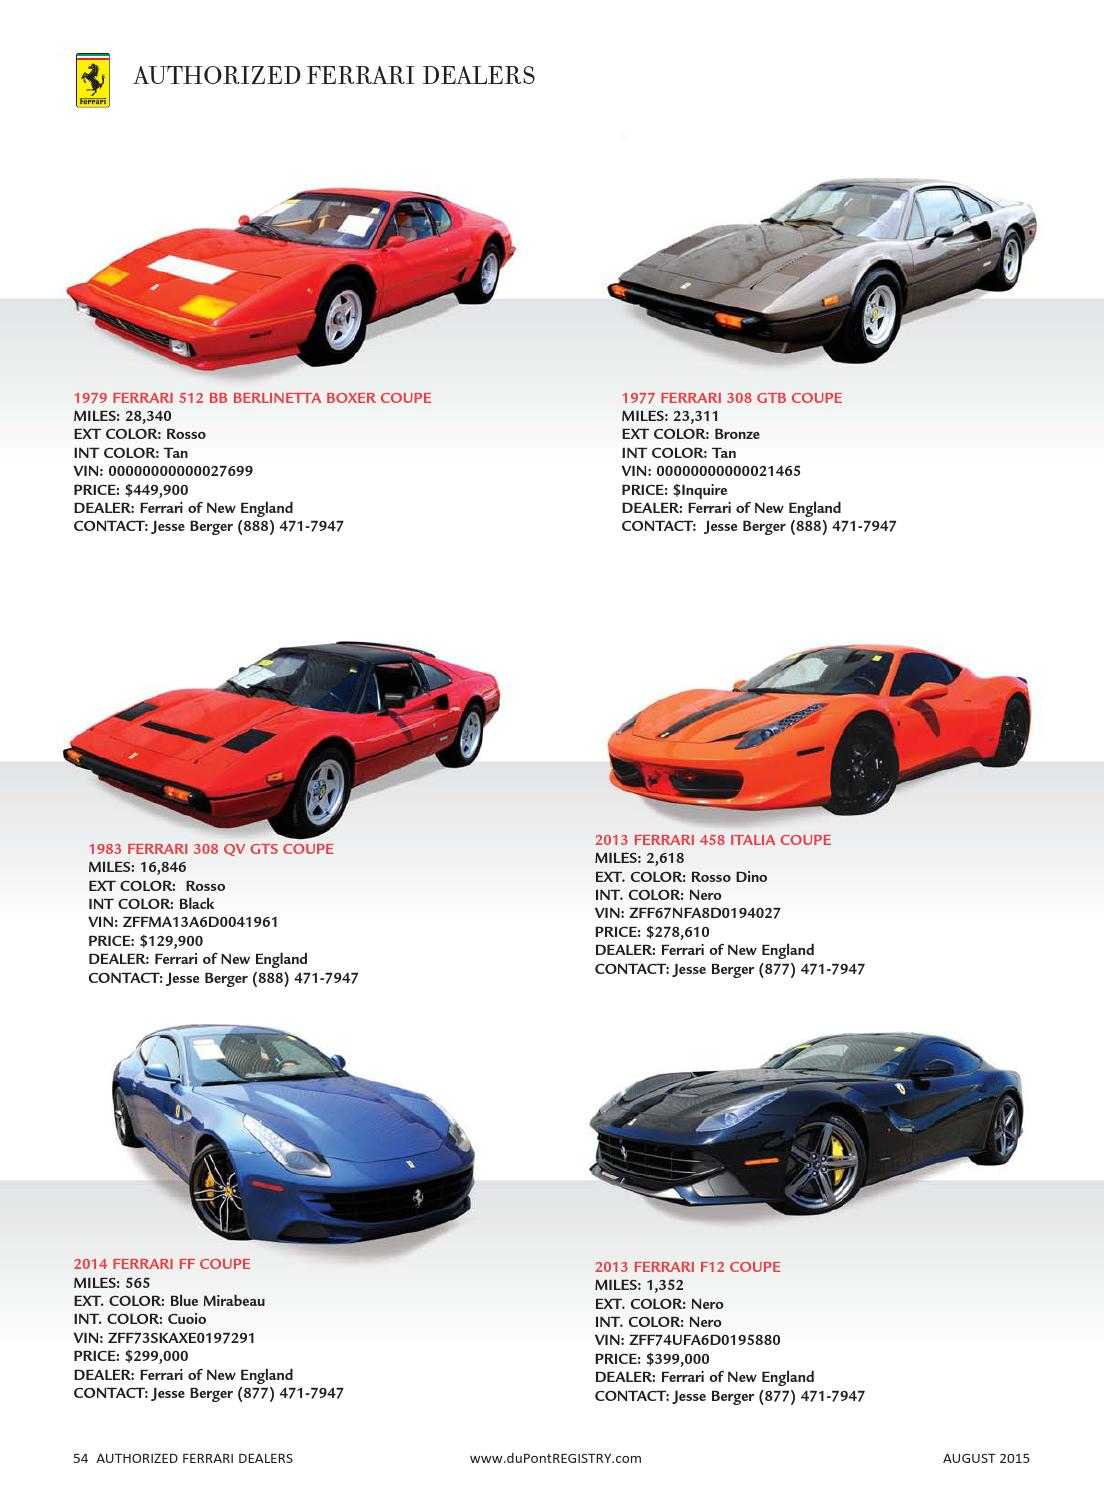 duPontREGISTRY Autos August 2015 by duPont REGISTRY - issuu